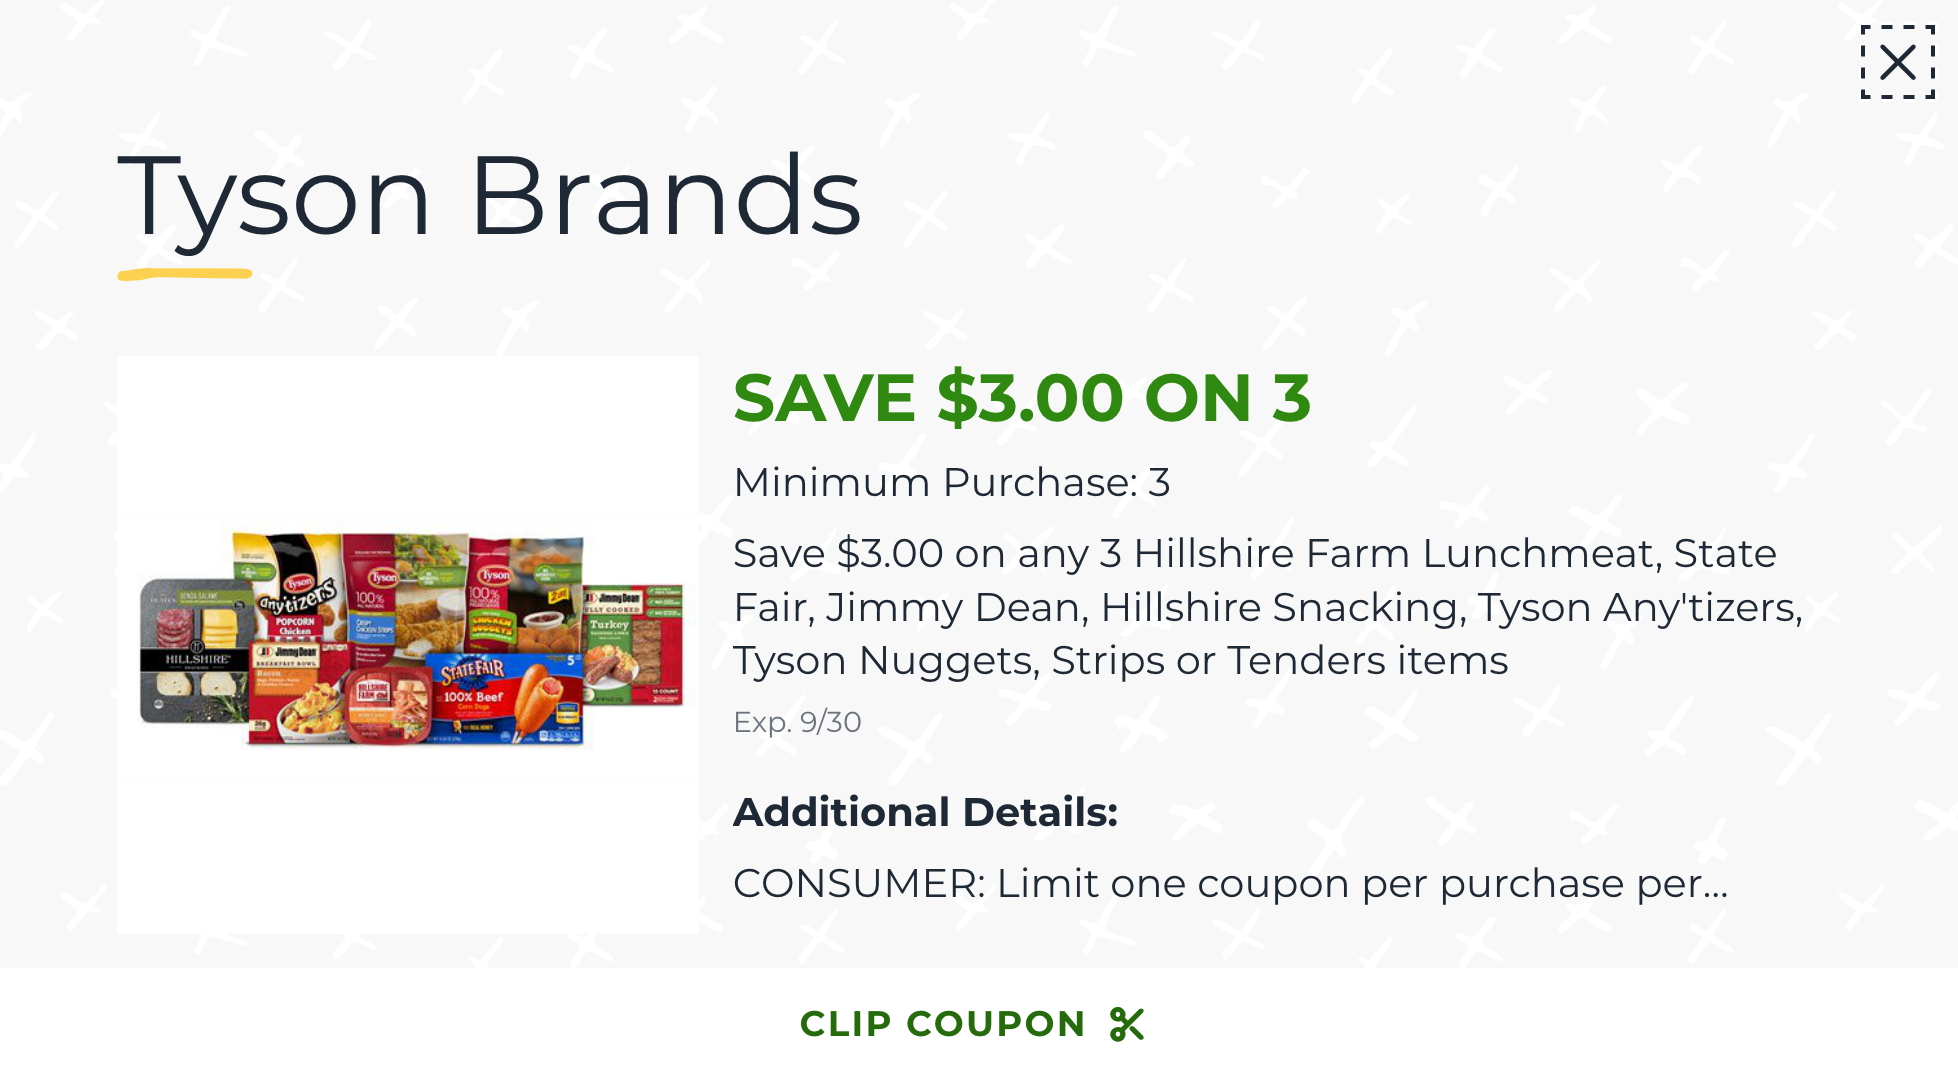 Look To Tyson® For Delicious Products For Back To School - Find Your Family's Favorites At Publix on I Heart Publix